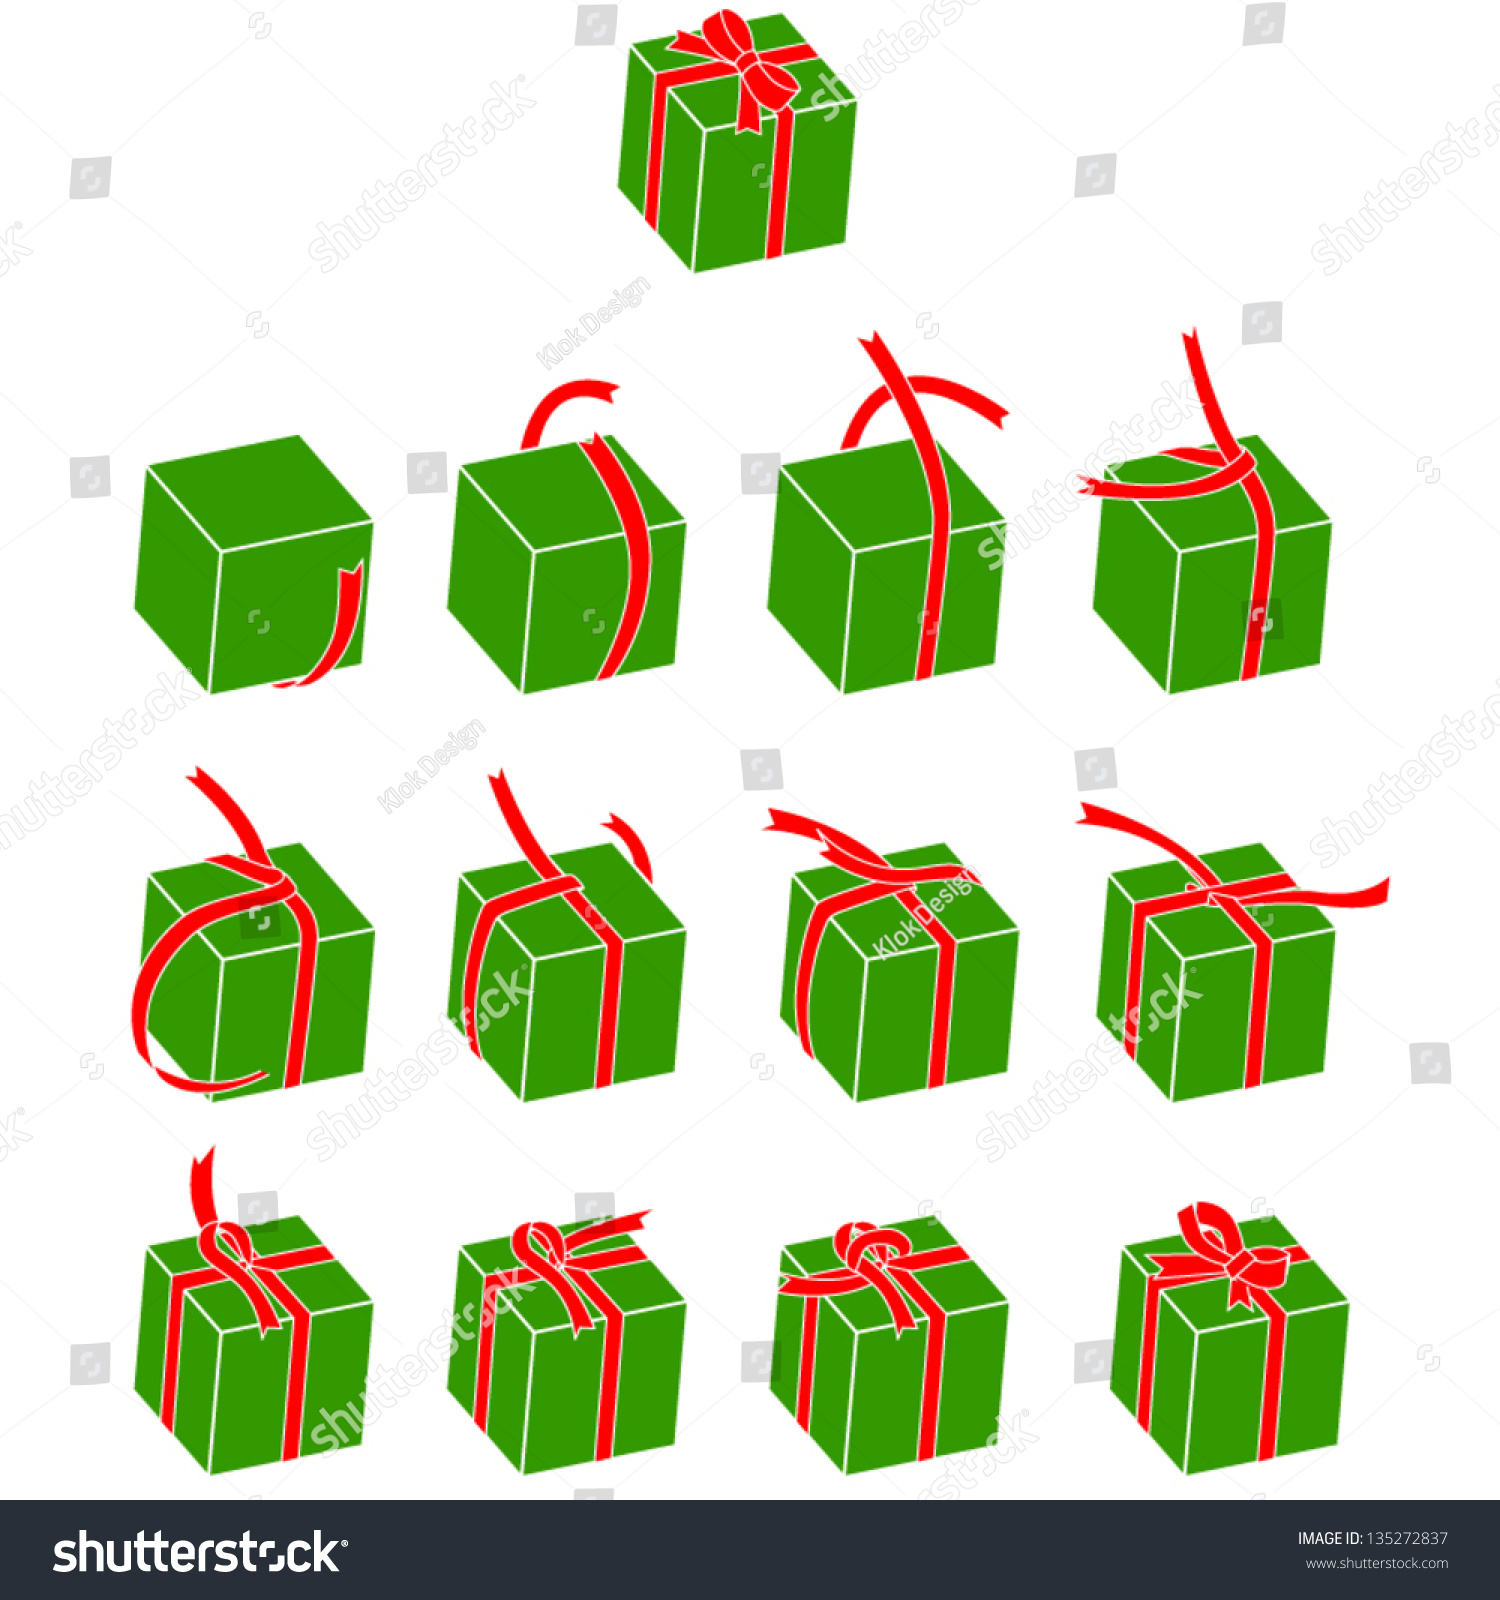 how to tie a ribbon on a box stock vector illustration 135272837 shutterstock. Black Bedroom Furniture Sets. Home Design Ideas